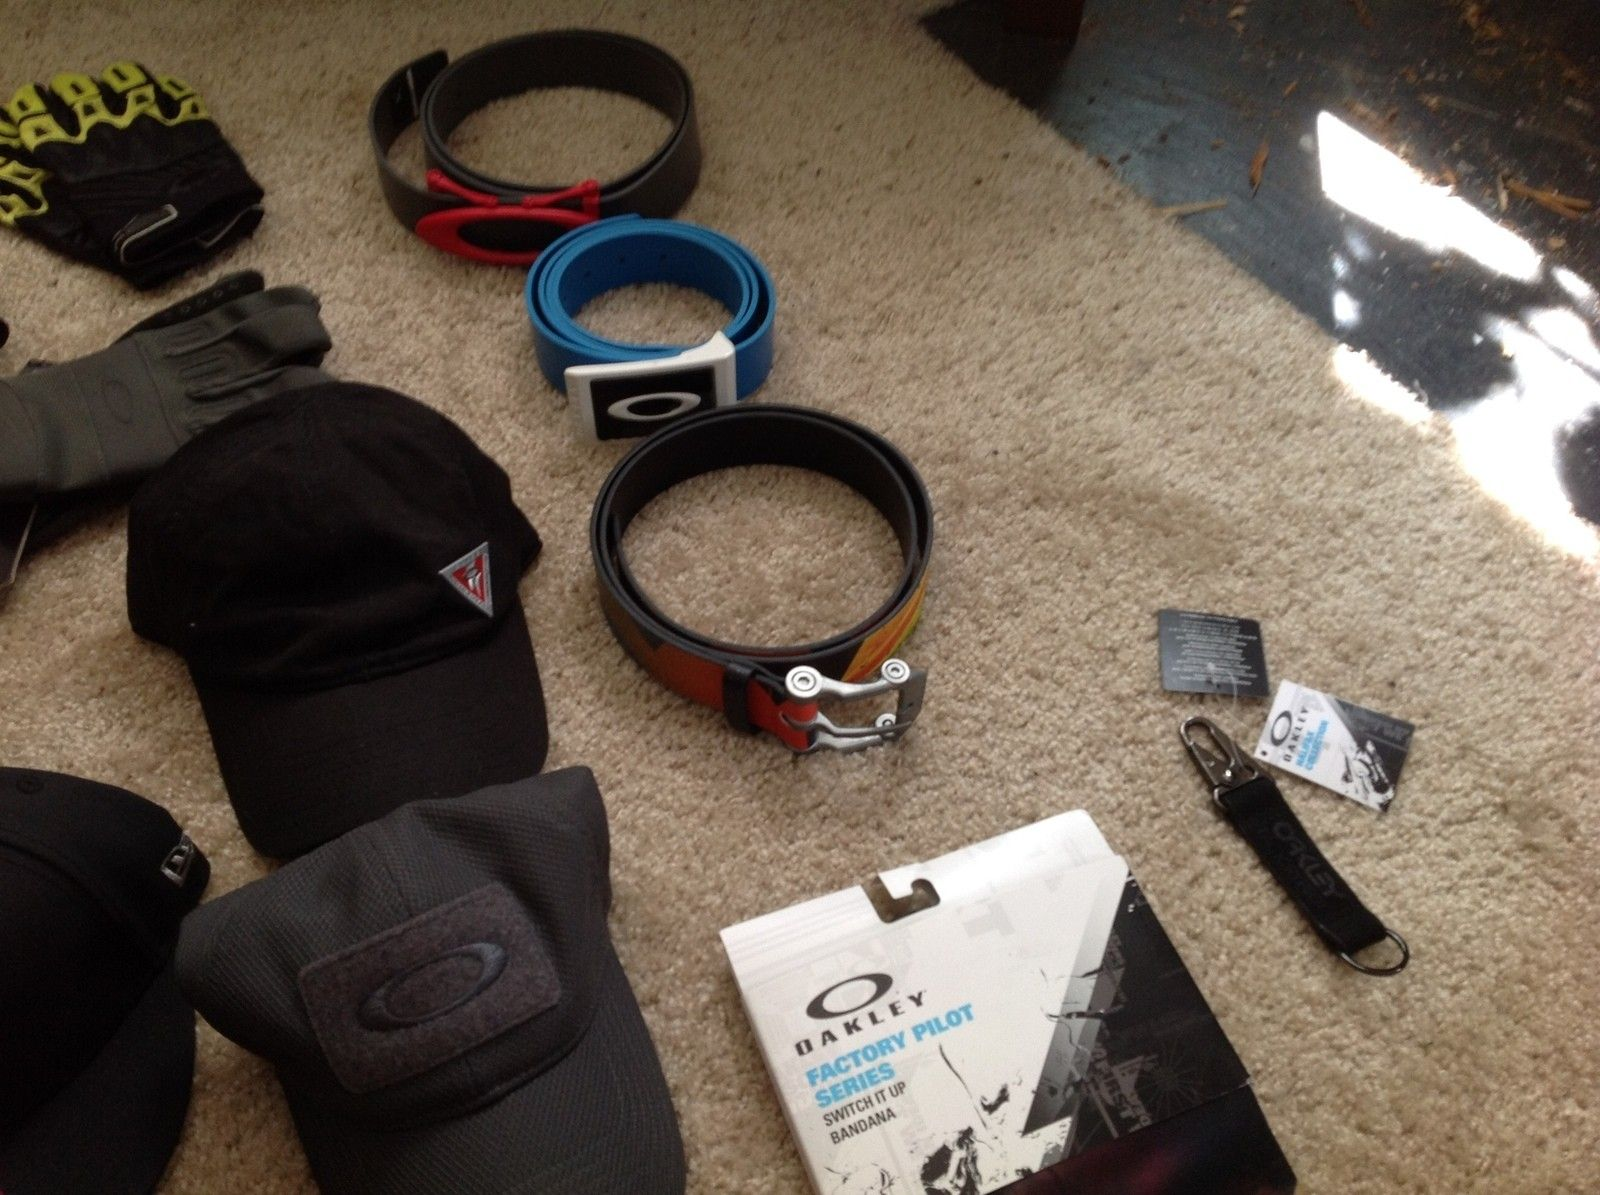 Collection of Oakley hats/ gloves/ belts/ wallets/ collectibles - image.jpeg